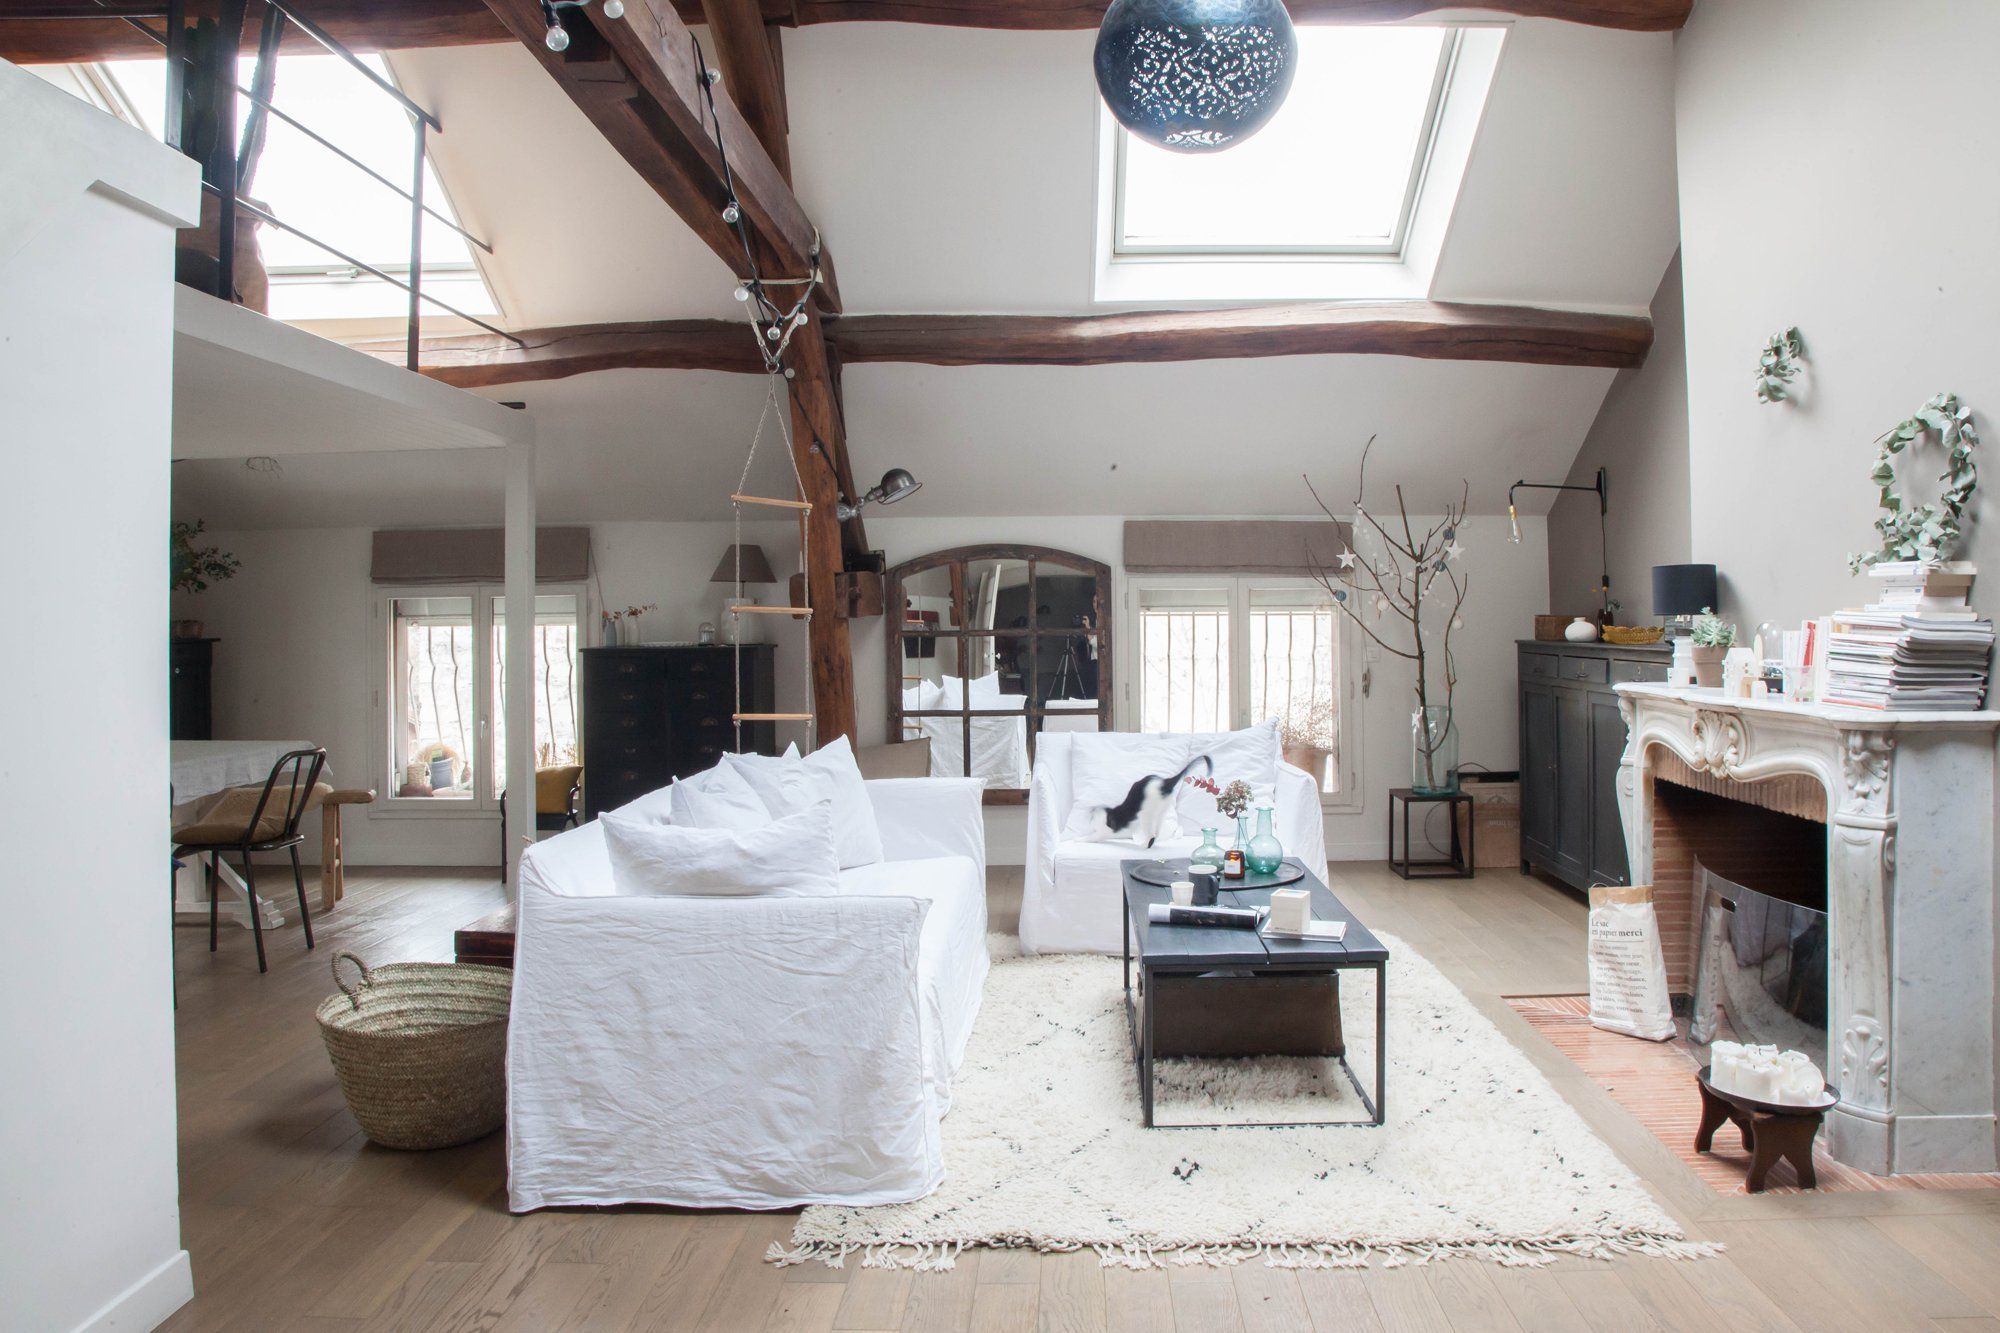 Living room decor - Harmony in a Rustic French Home